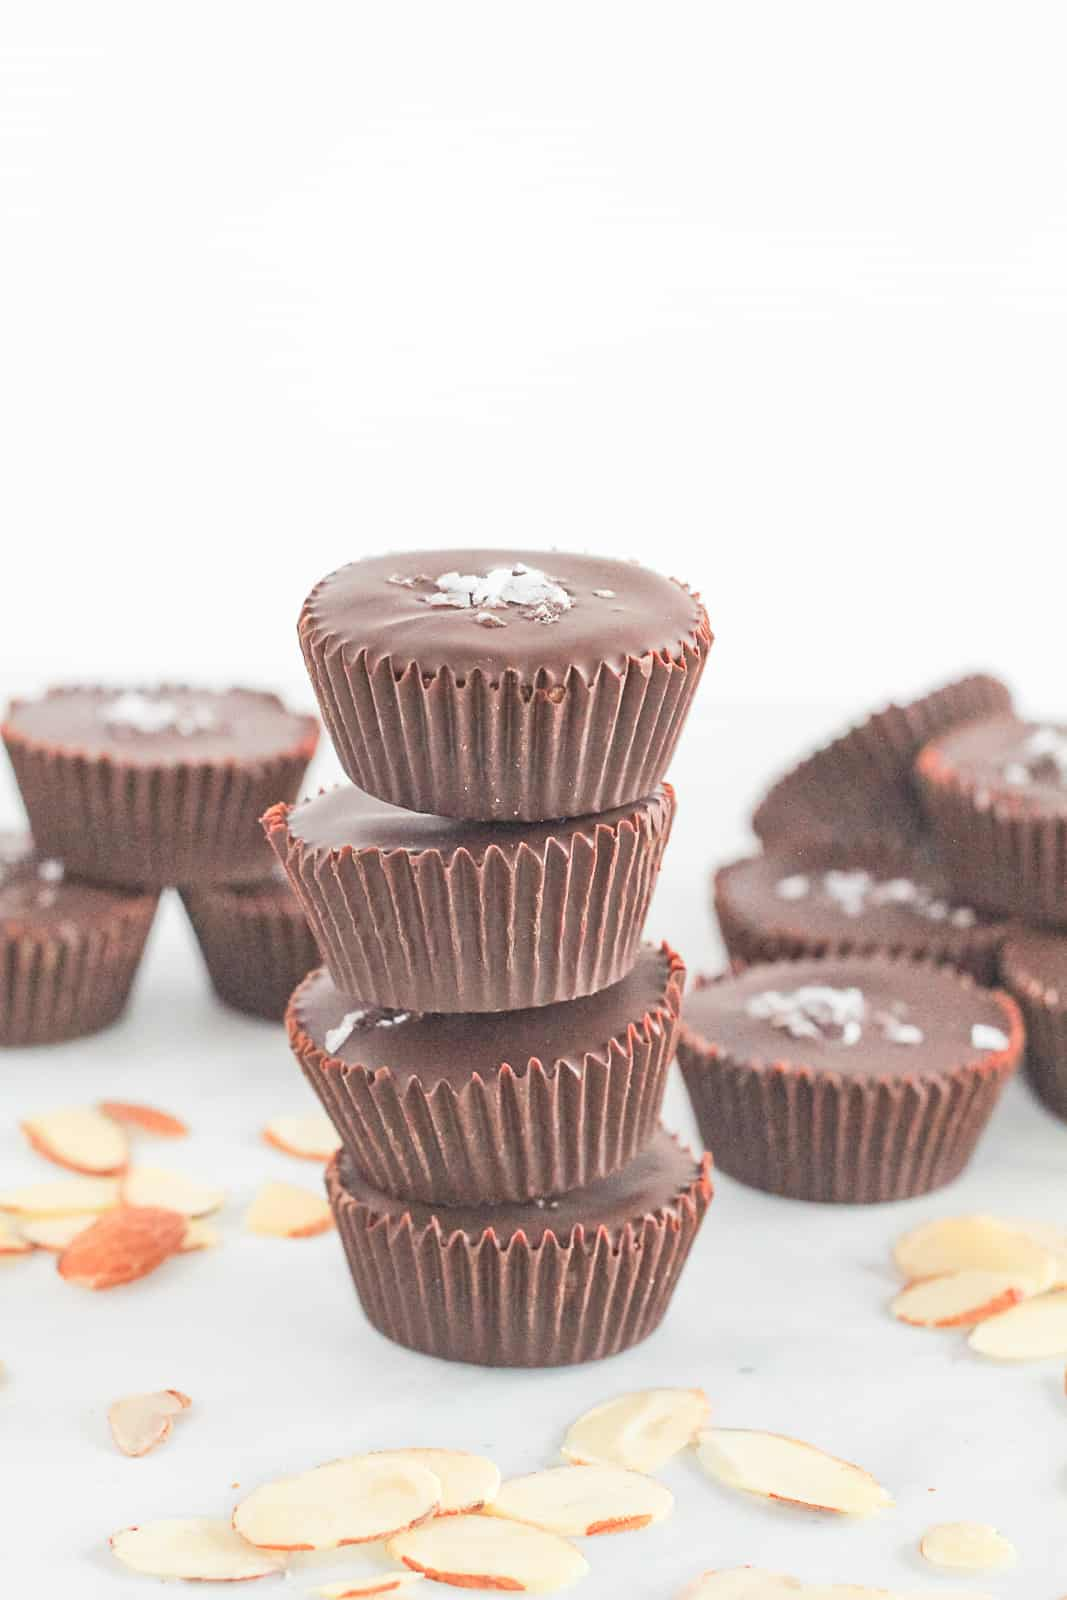 Homemade Dark Chocolate Almond Butter Cups stalked four high.